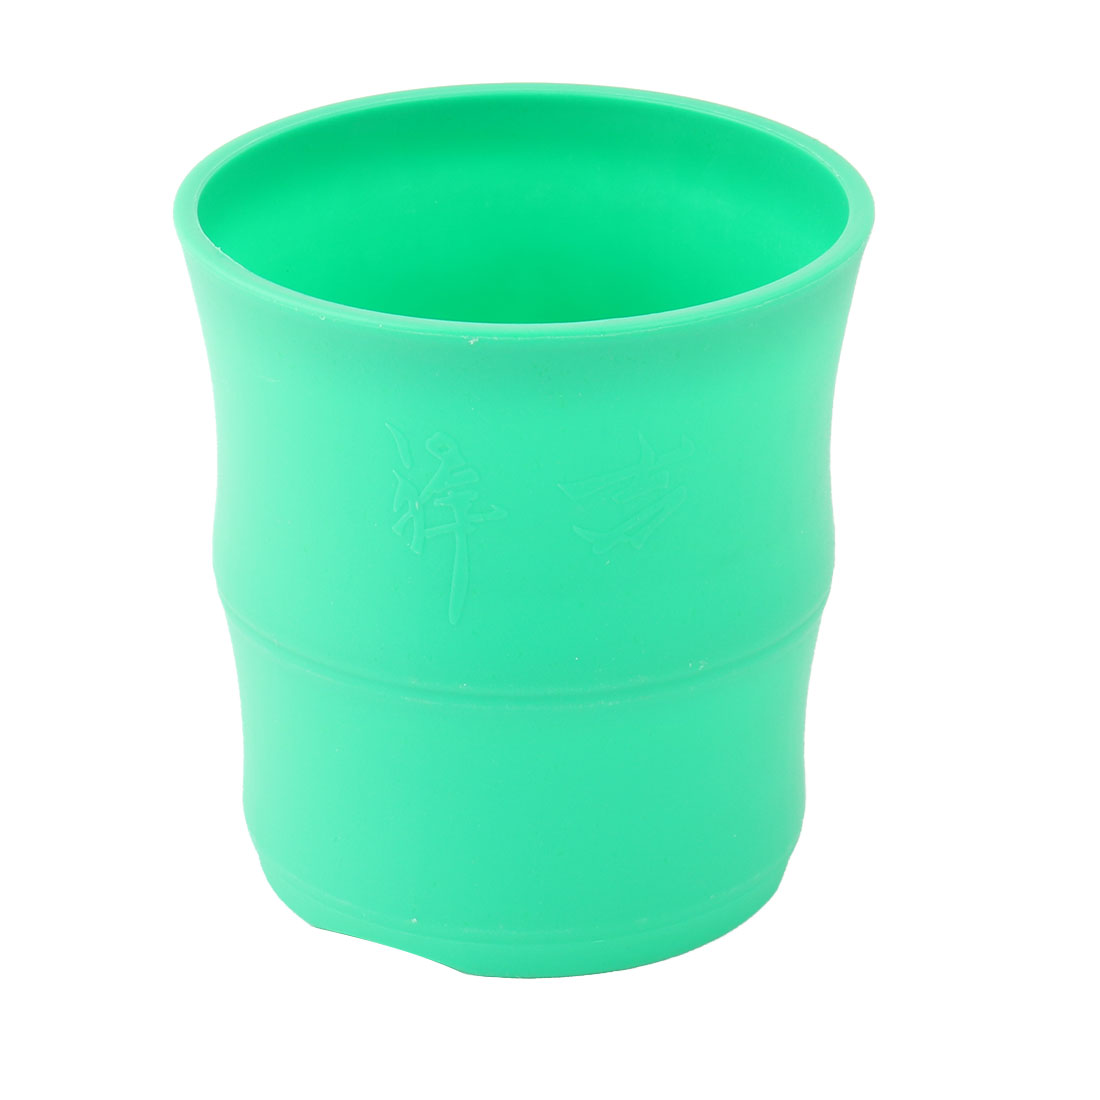 Dorm Balcony Table Decor Plastic Round Flower Cactus Plant Pot Holder Container Green